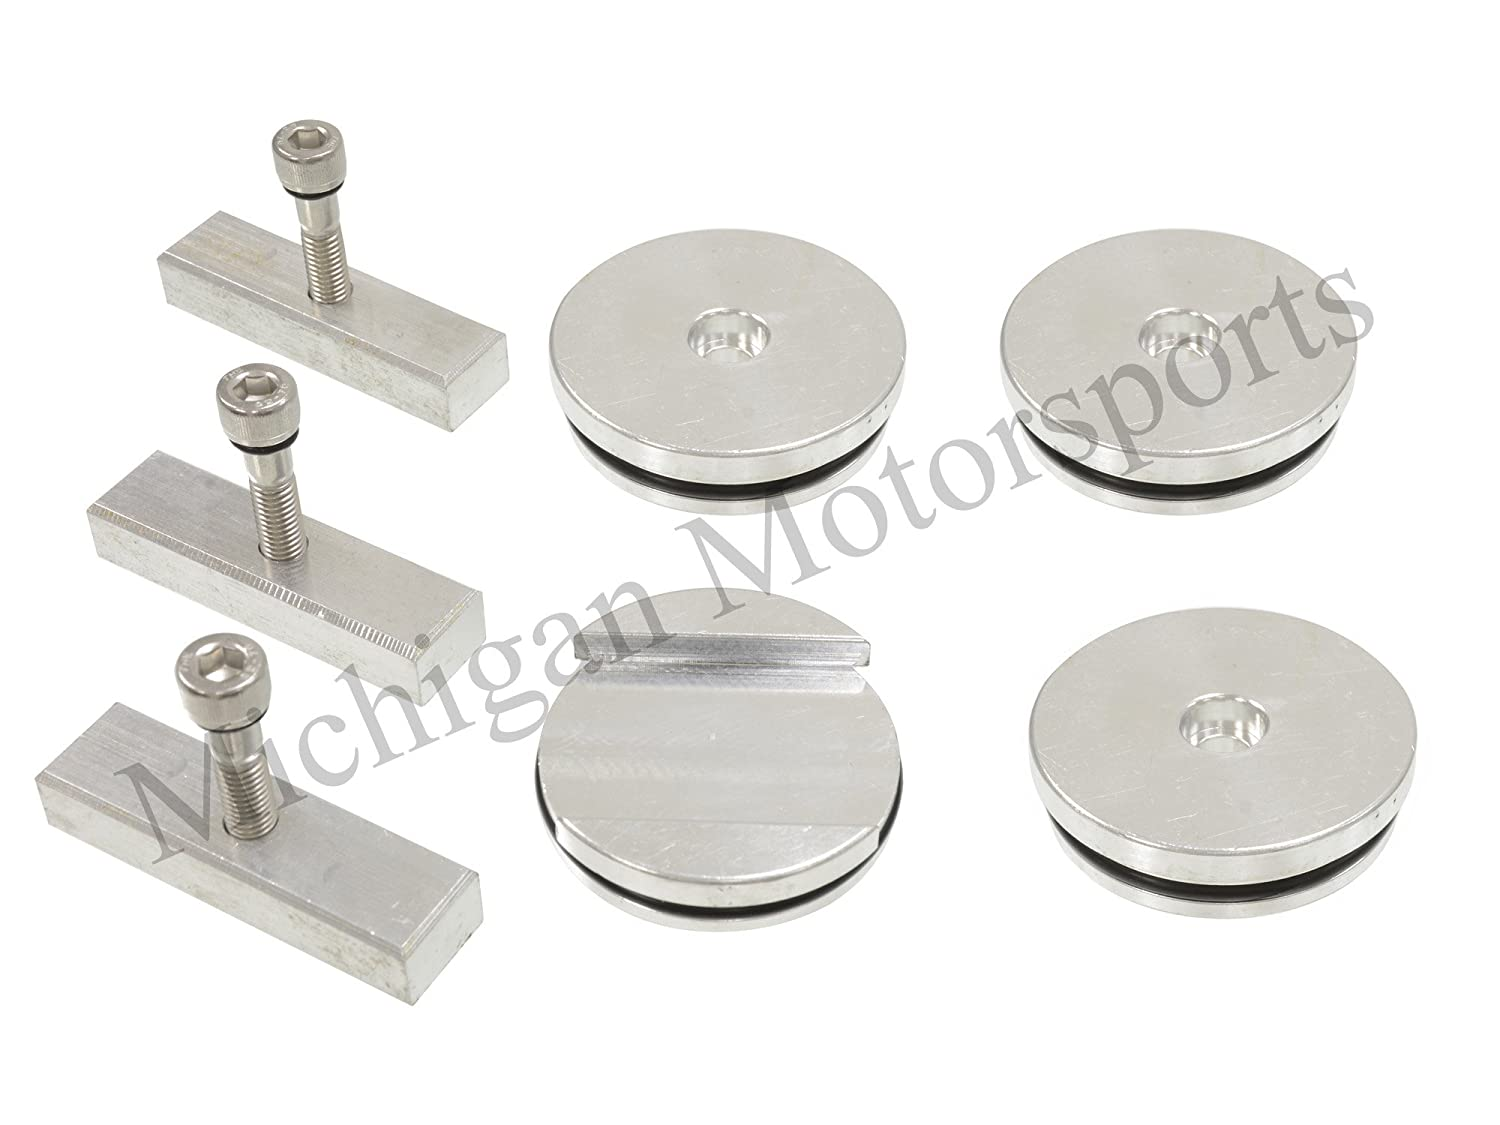 Michigan Motorsports Billet Aluminum Freeze Plug Set Fits1989-2007 5.9L Dodge Cummins Diesel